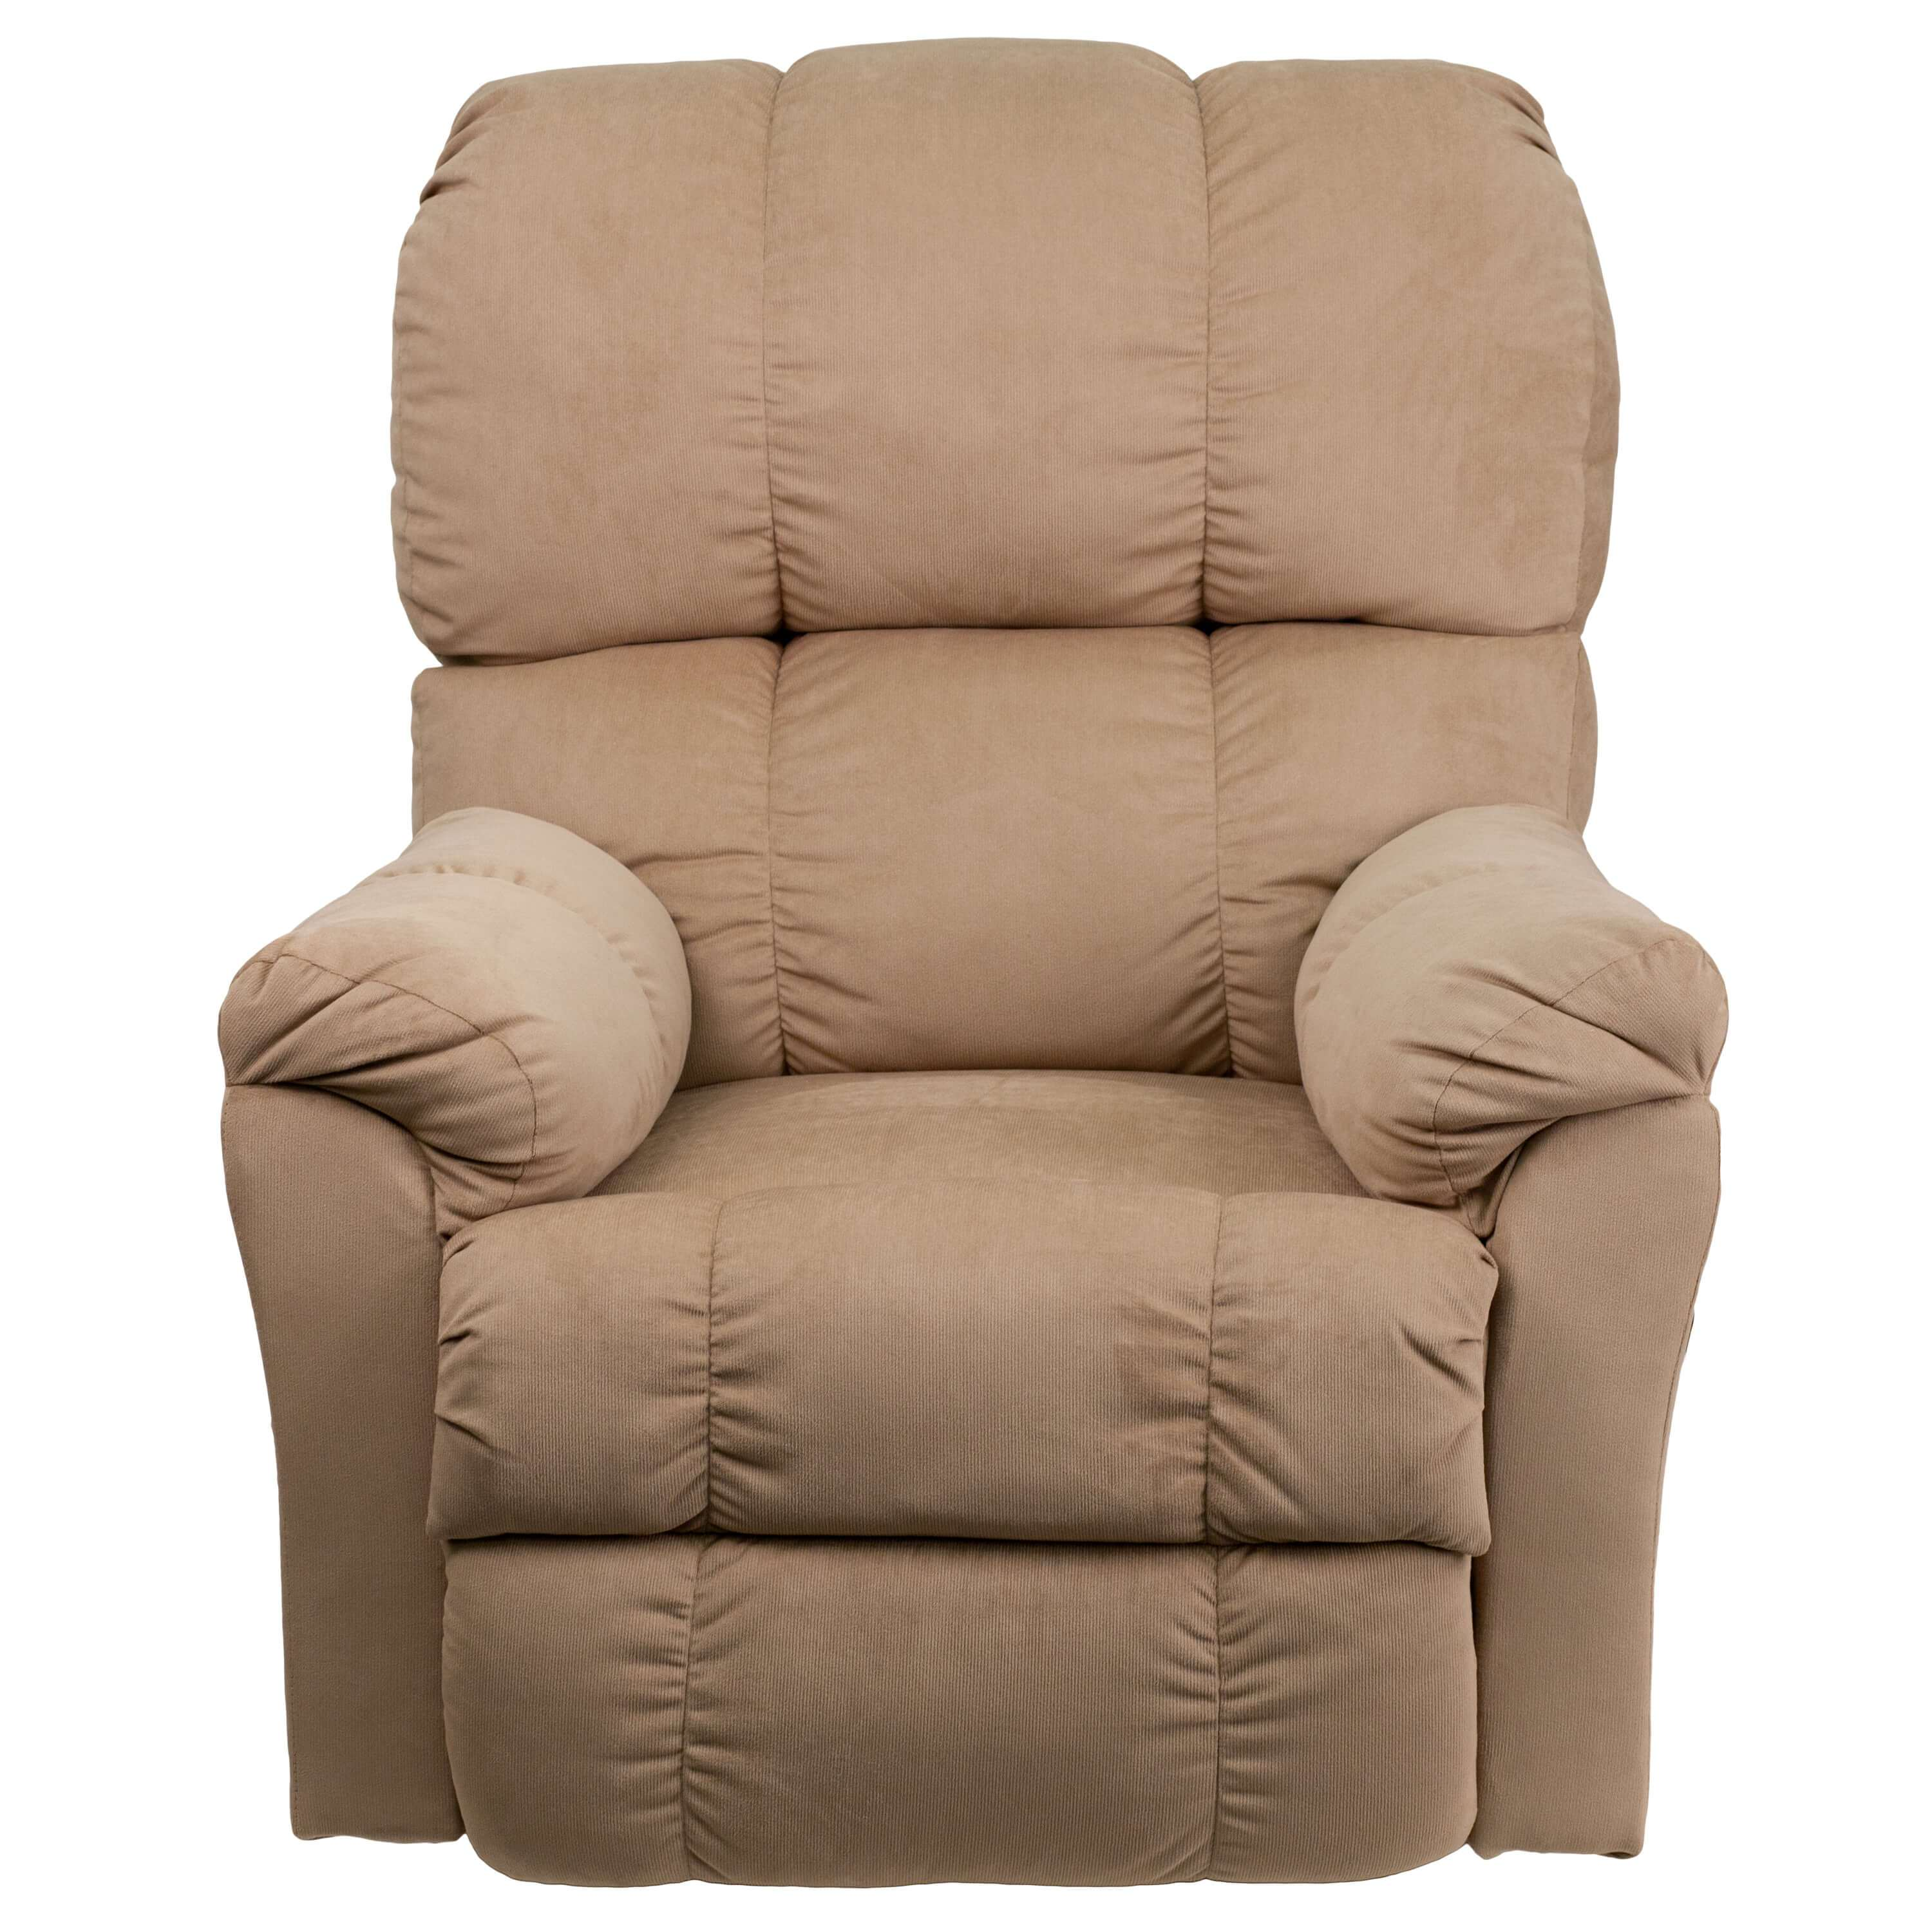 Microfiber recliner front view 1